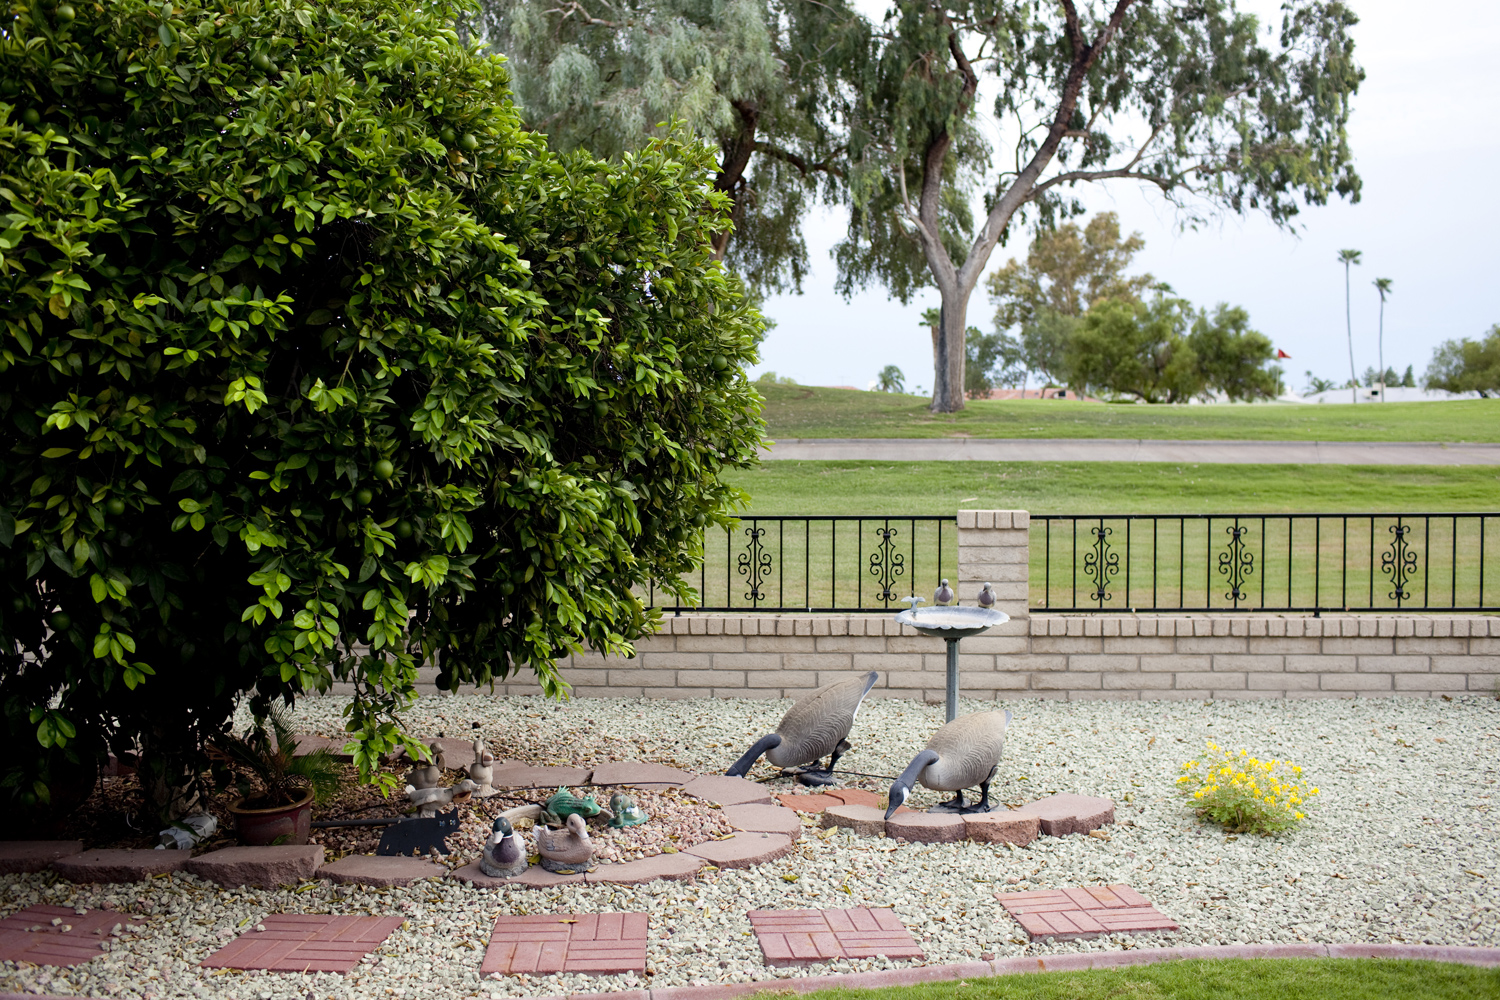 A flock of decorative geese in Faye Pitts' garden. Sun City Arizona, August 26, 2010.